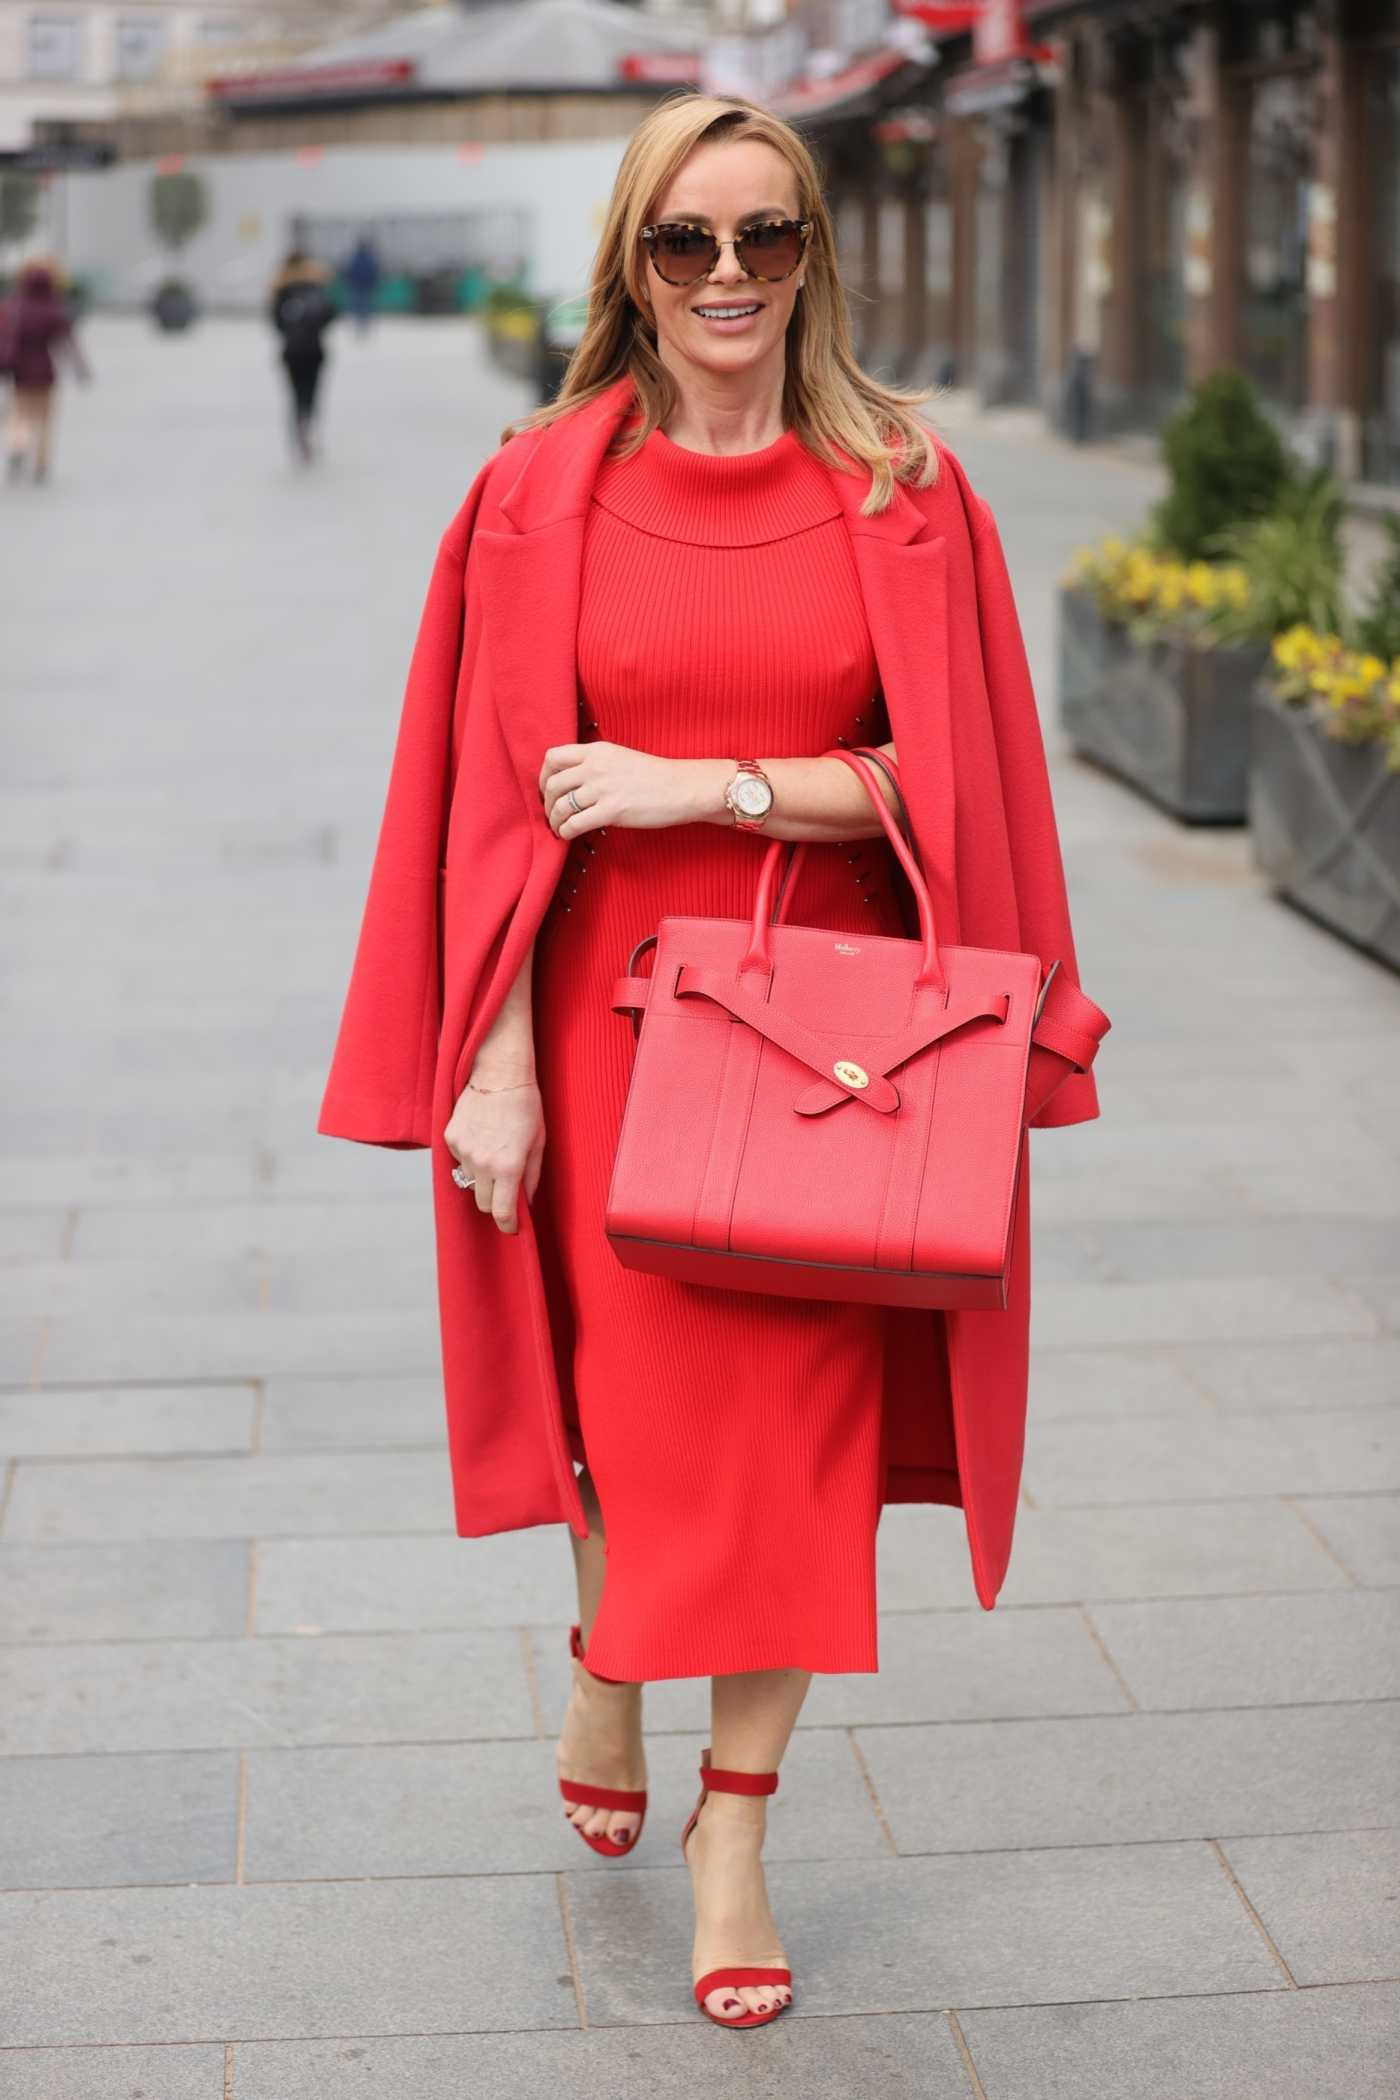 Amanda Holden in a Red Outfit Arrives at the Heart Radio Studios in London 03/01/2021